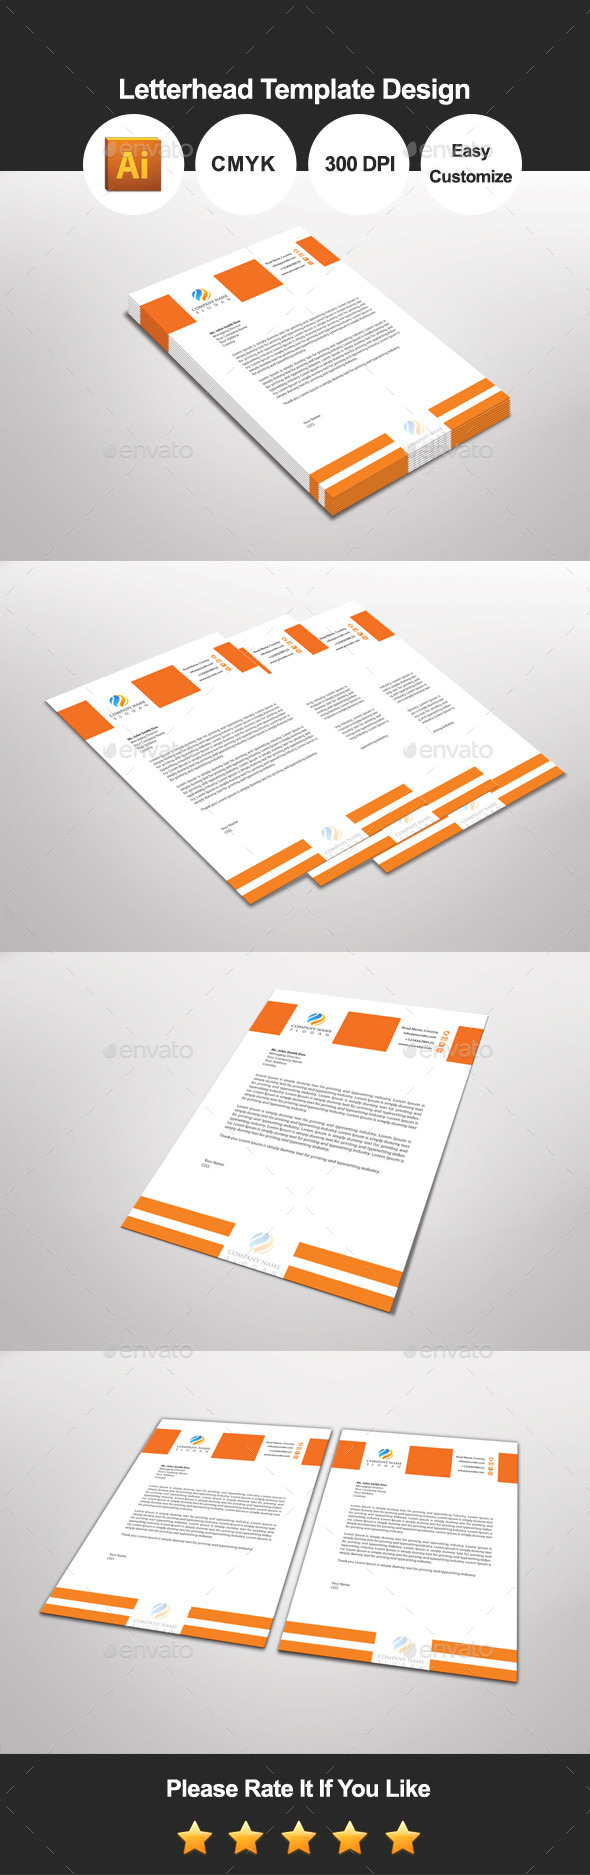 Orandian letterhead template design by graphicsdesignator orandian letterhead template design proposals invoices stationery spiritdancerdesigns Choice Image